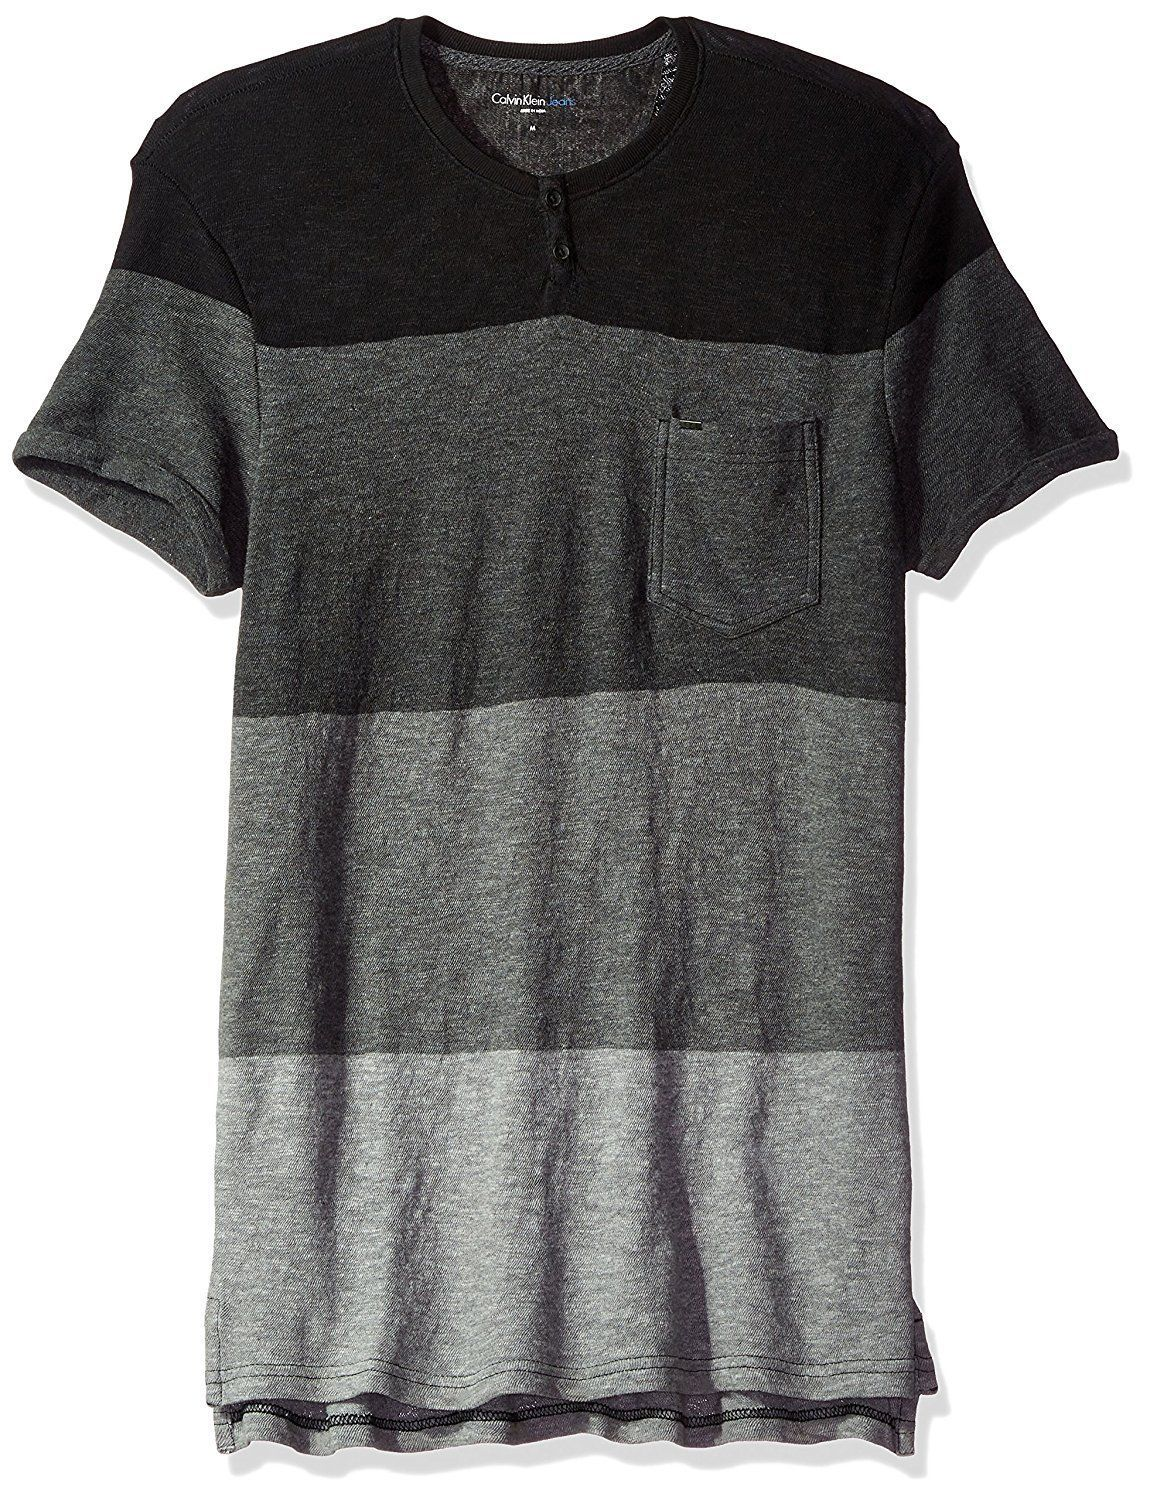 Calvin Klein Jeans Mens Short Sleeve Slub Slit Neck T-Shirt, Small, Black 3078-3 - $36.56